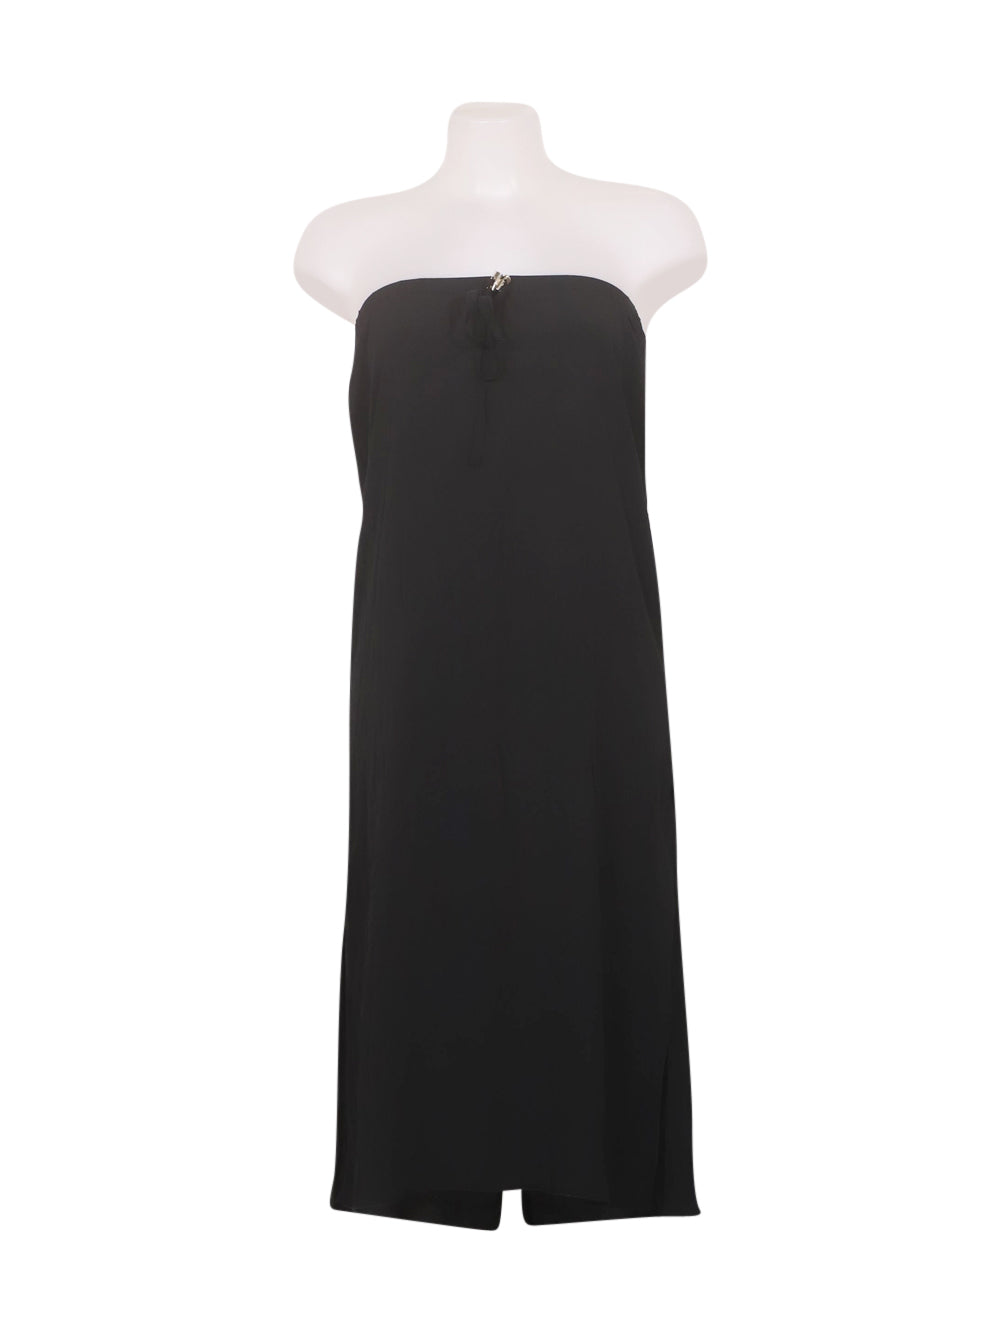 Front photo of Preloved Carla G. Black Woman's dress - size 8/S